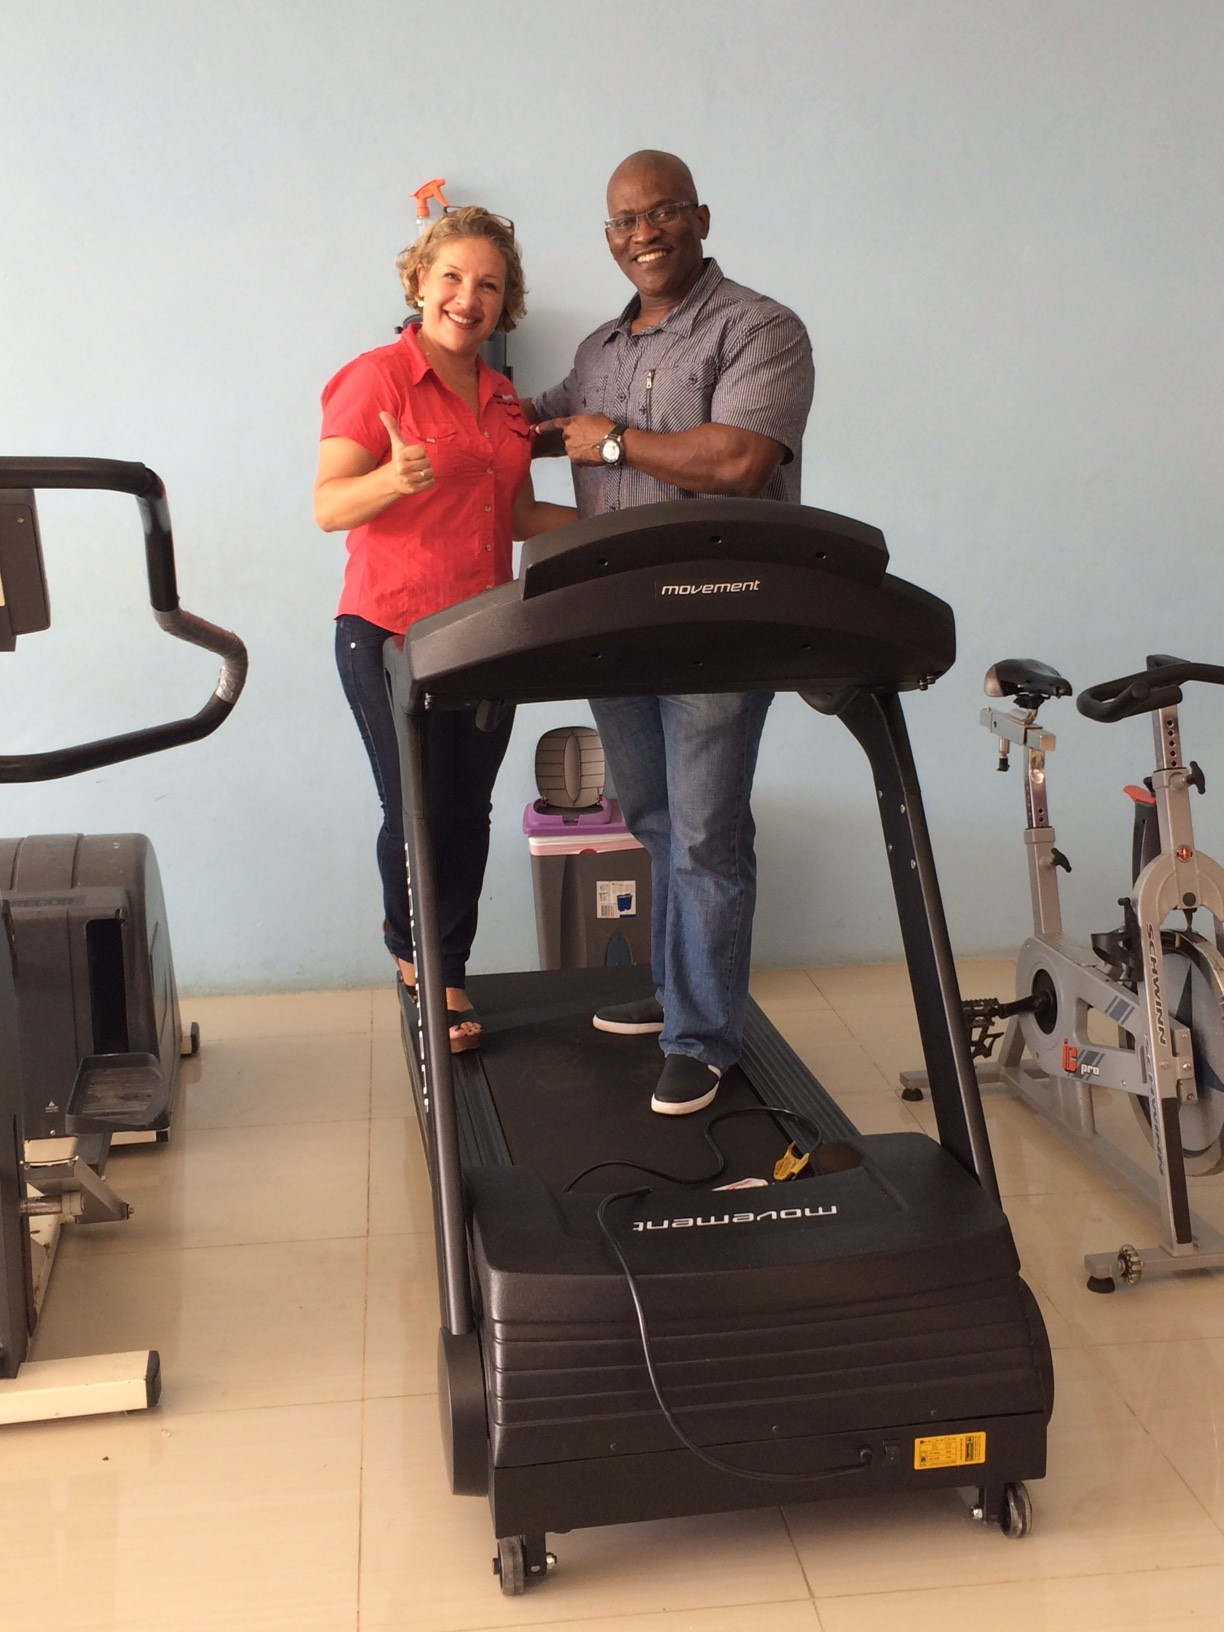 Sherryl Leal (TECNOSPORTS) and Yunard Nay Philips (LIFELINE FITNESS Curacao). Fitness Equipment supplier TECNOSPORTS